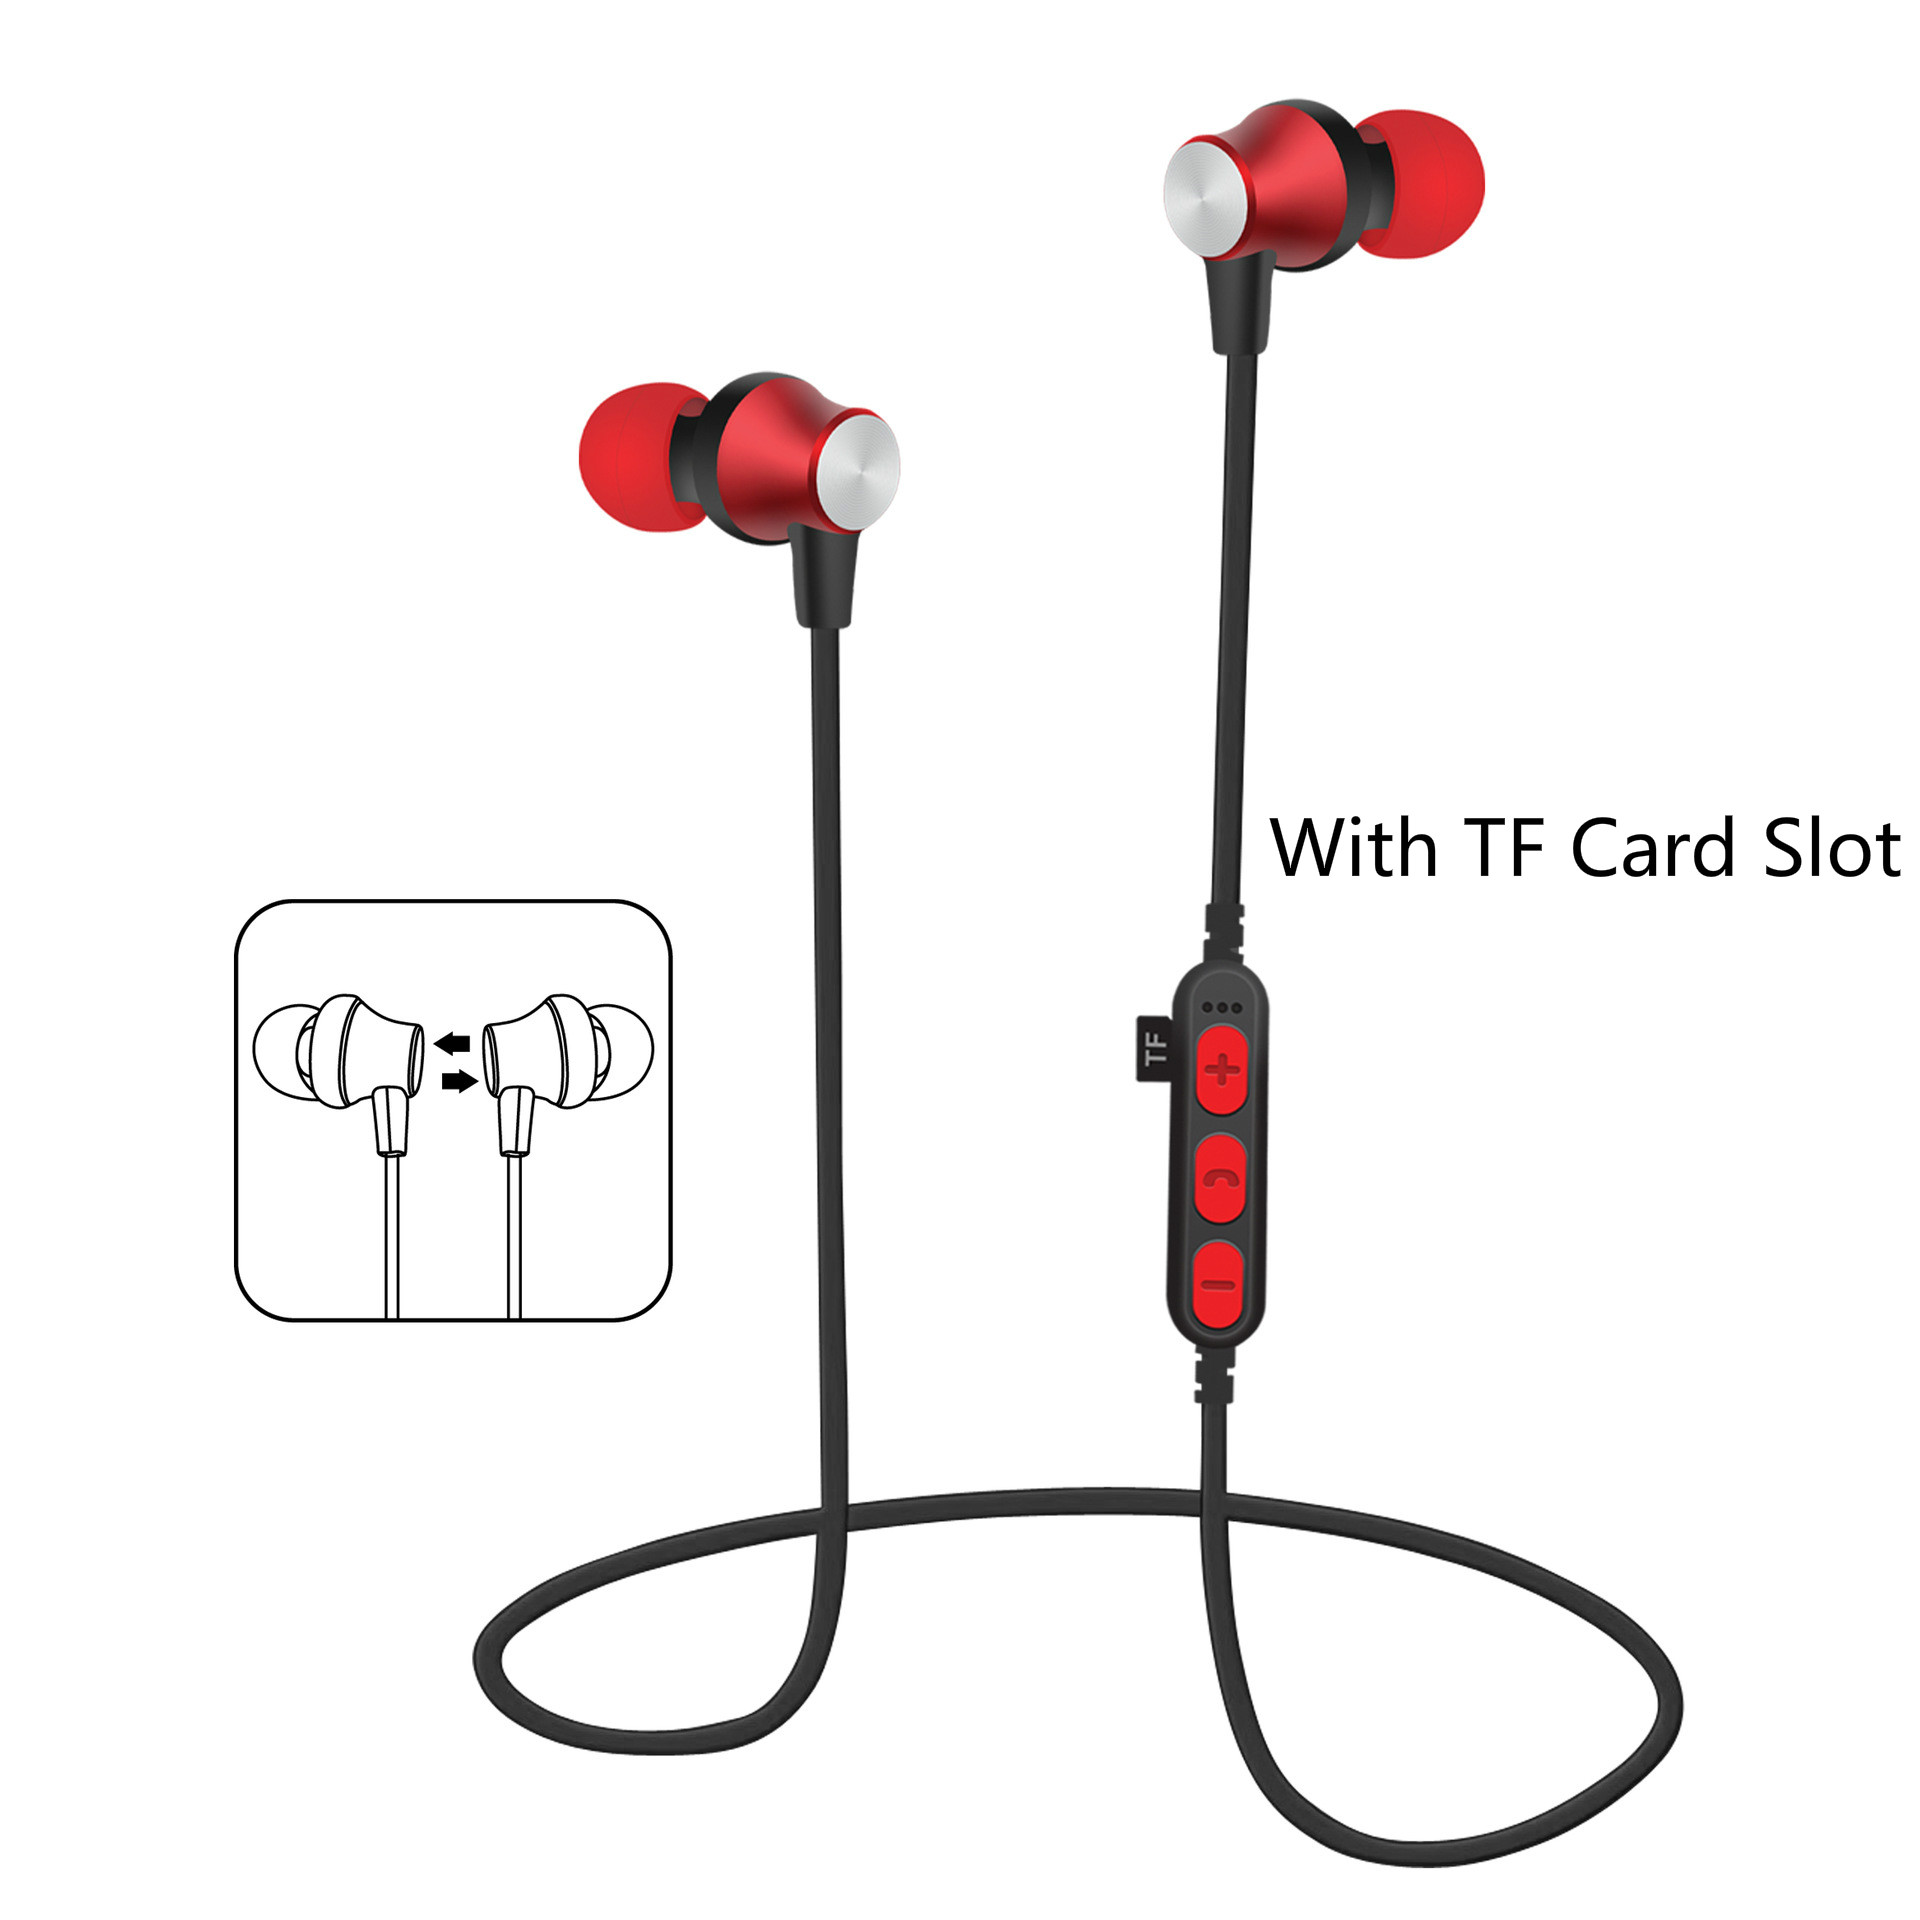 Magnet wireless Bluetooth headset with TF card slot  earphone subwoofer headphone with microphone for all phone mymei 2016 new wireless bluetooth handsfree headset super bass music player headphone with microphone tf card slot for smartphones